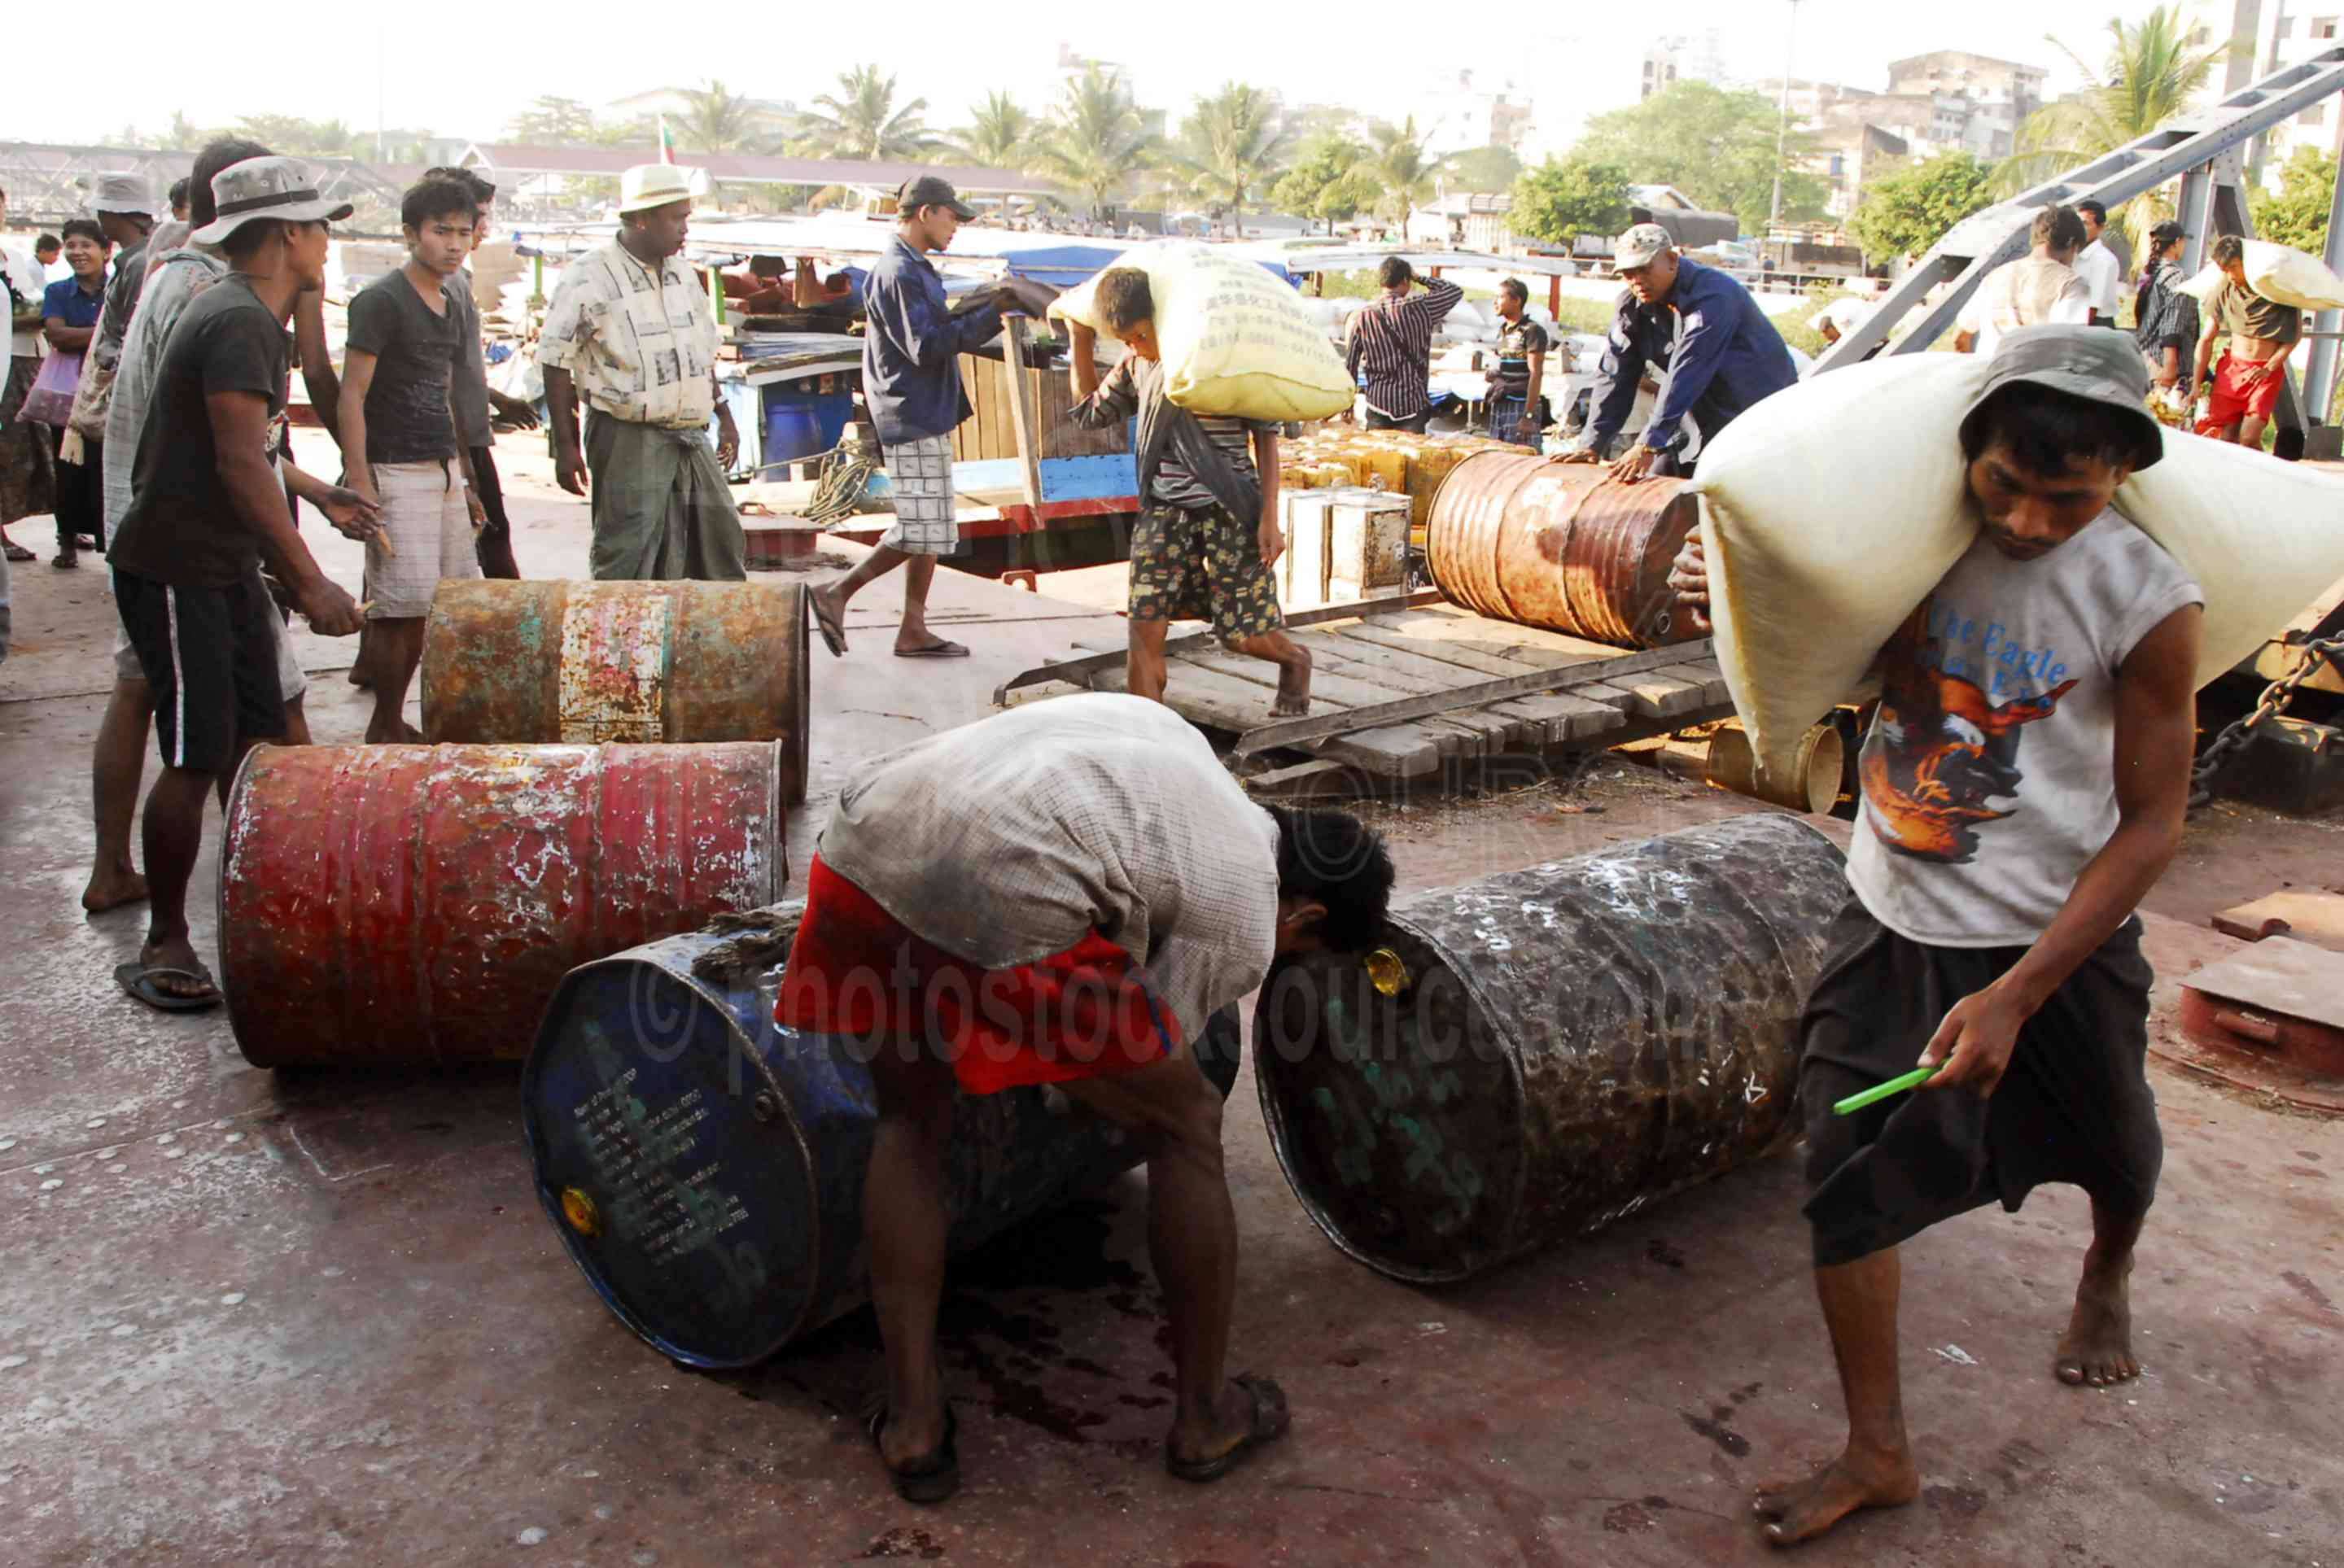 Yangon Waterfront Workers,myanmar,yangoon,rangon,rangoon,wharf,waterfront,boats,ferry,jetty,yangon river,river,hlaing river,carrying,loading,cargo,barrels,fuel